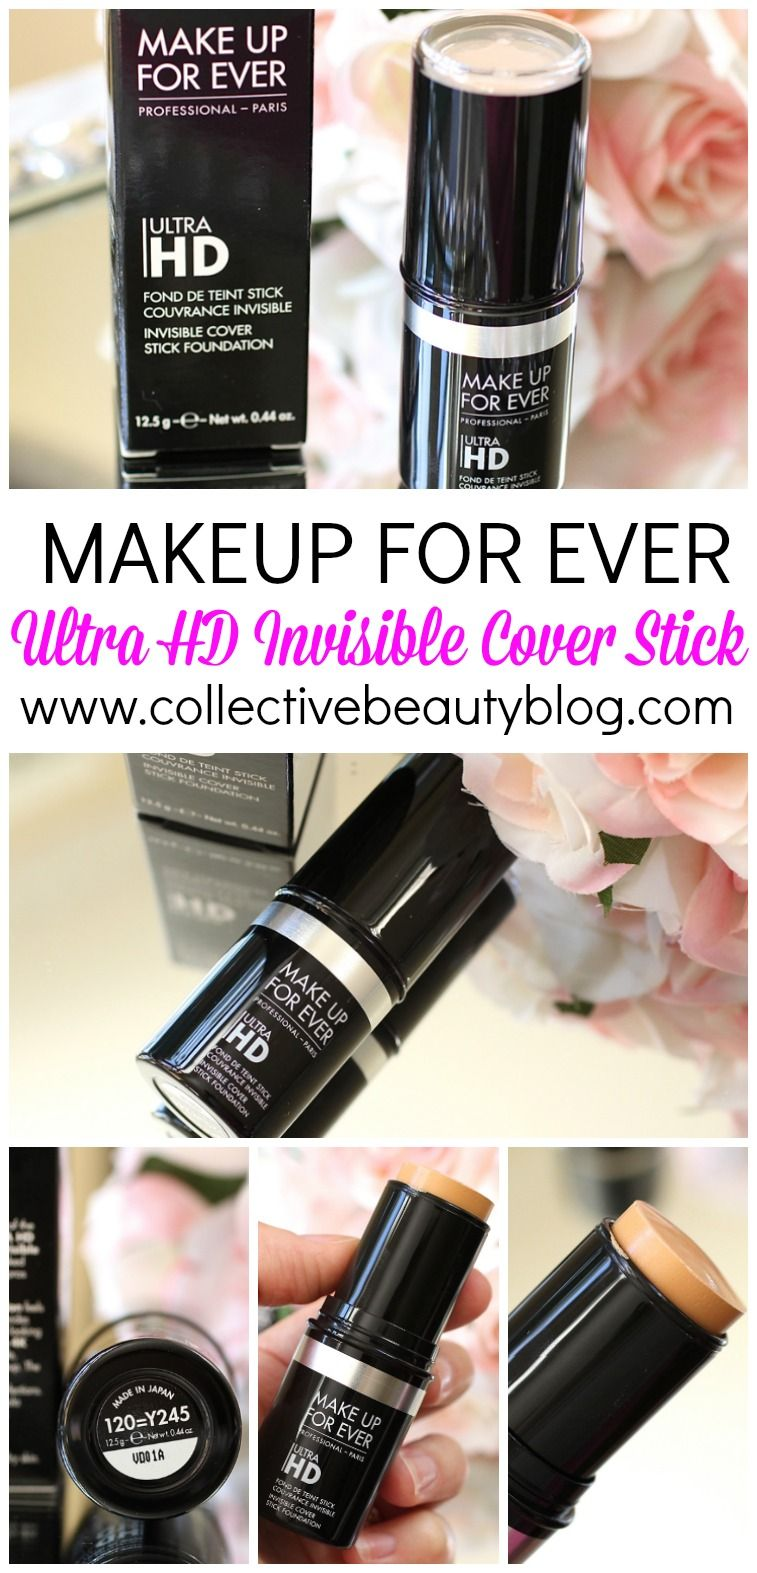 Makeup For Ever Ultra HD Invisible Cover Stick Foundation